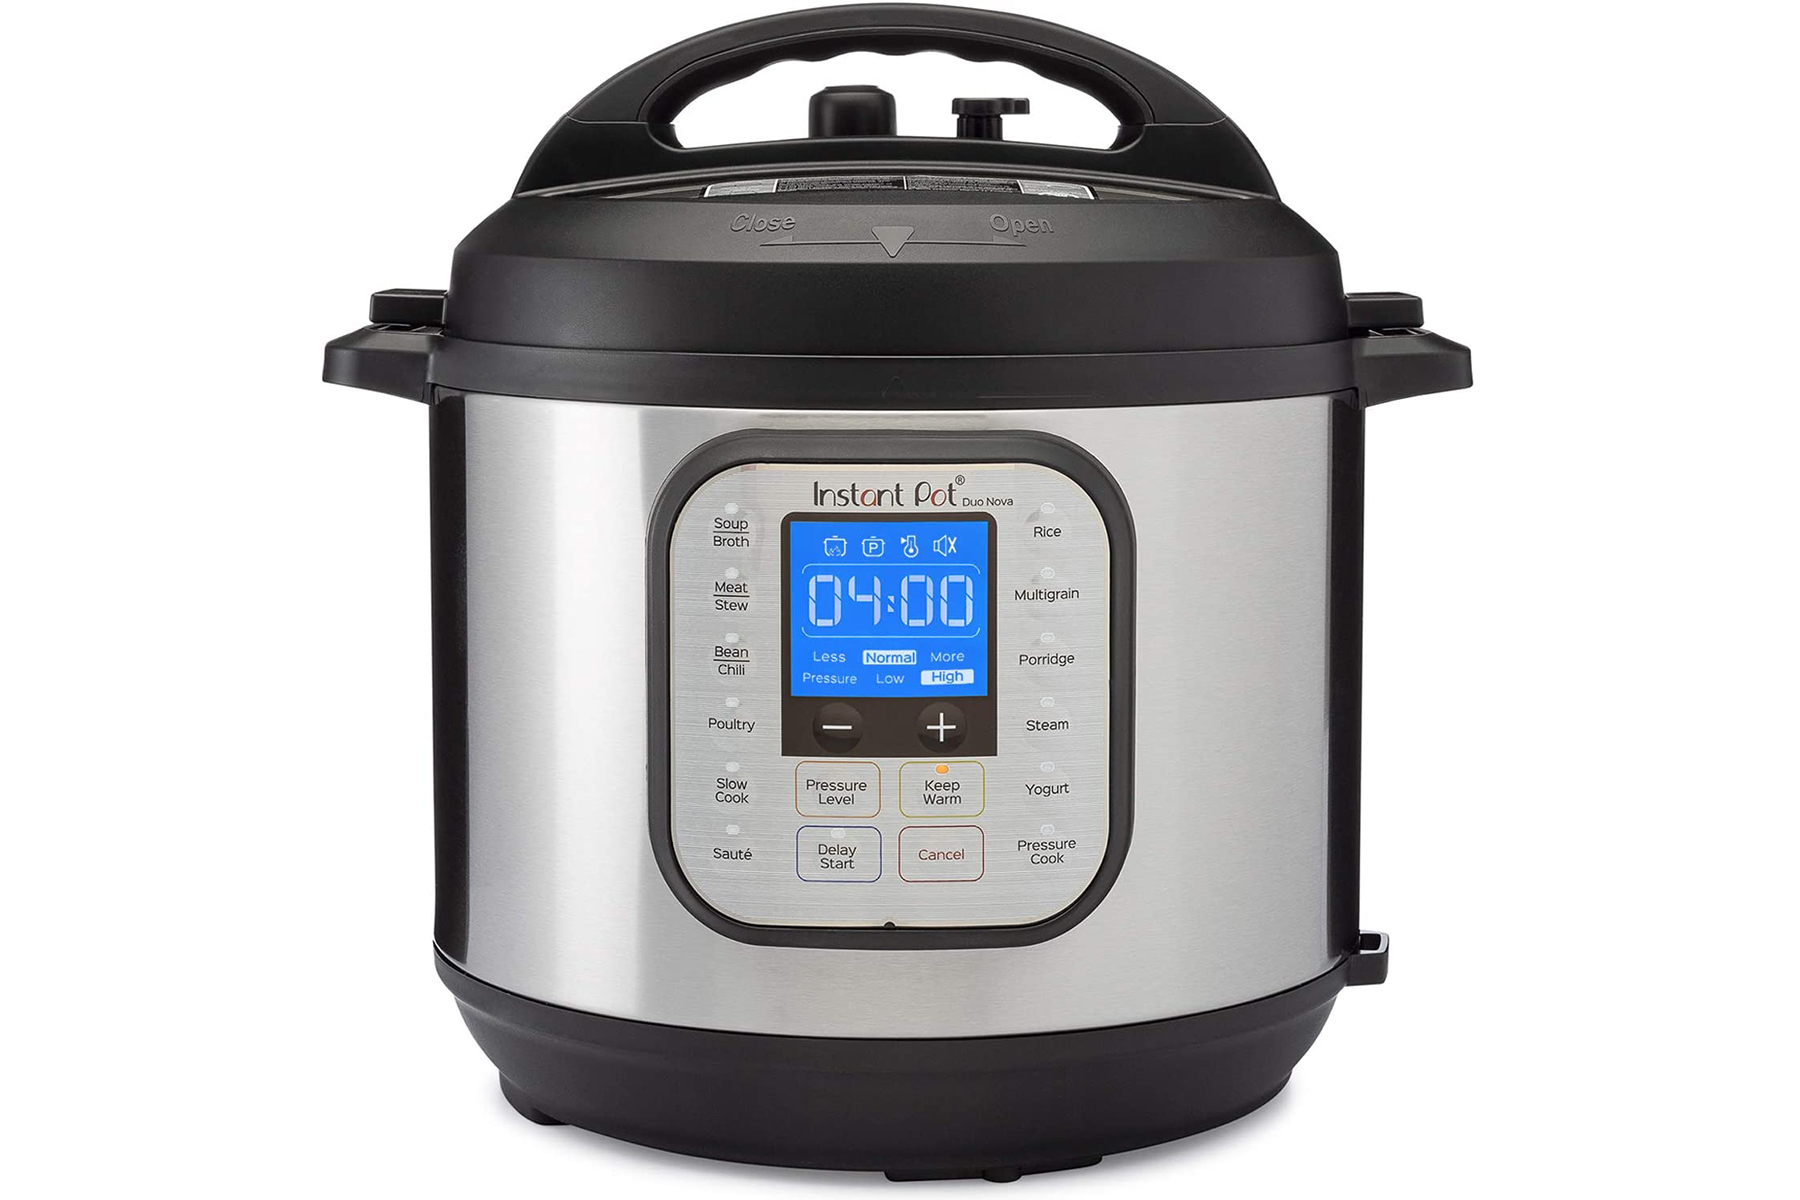 The Instant Pot Duo Nova Is Back Down To 50